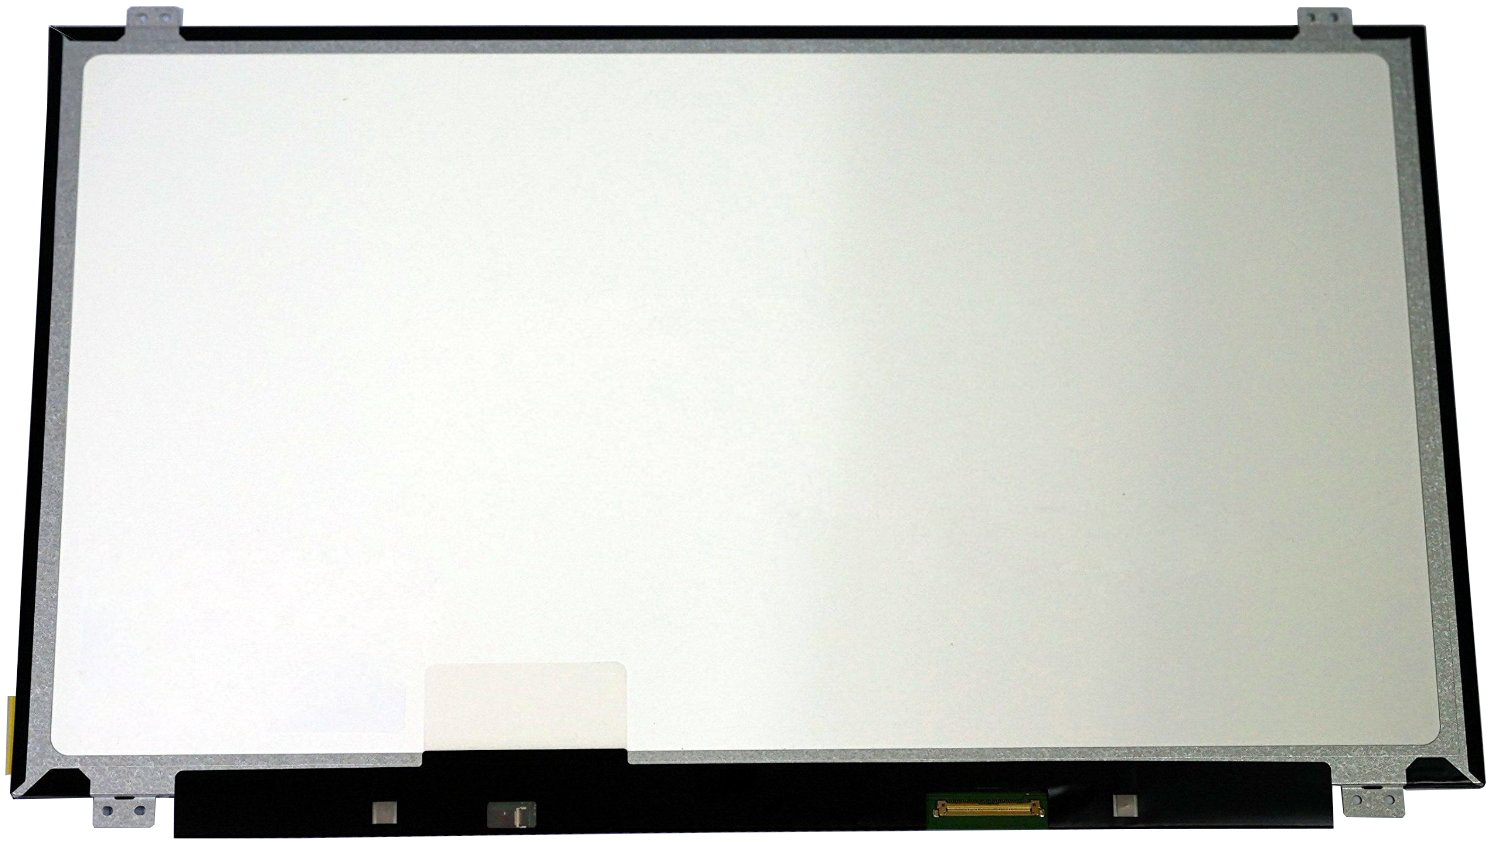 QuYing Laptop LCD Screen for Acer Aspire V5-551G V5-551 V5-531G V5-531 V5-571 V5-571G ZR7 PEW71 (15.6 inch 1366x768 40pin N) kefu 11309 4m motherboard for acer aspire v5 531 v5 571 v5 571g laptop motherboard original tested mainboard